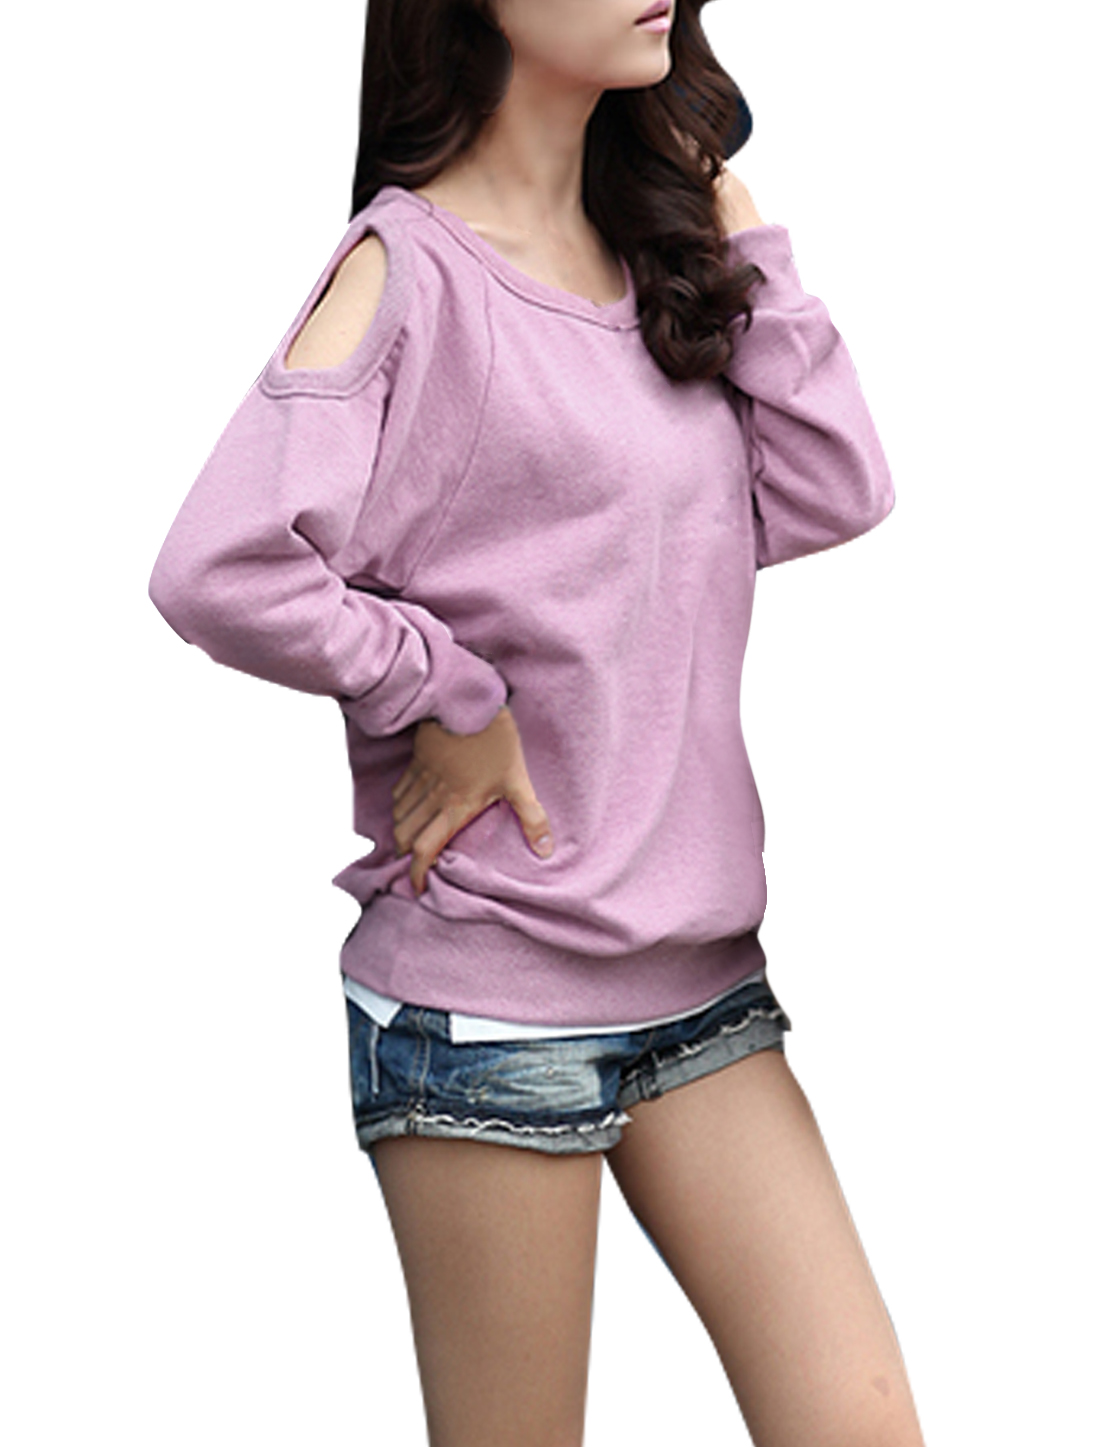 Ladies New Fashion Scoop Neck Long Sleeve Lilac Shirt M